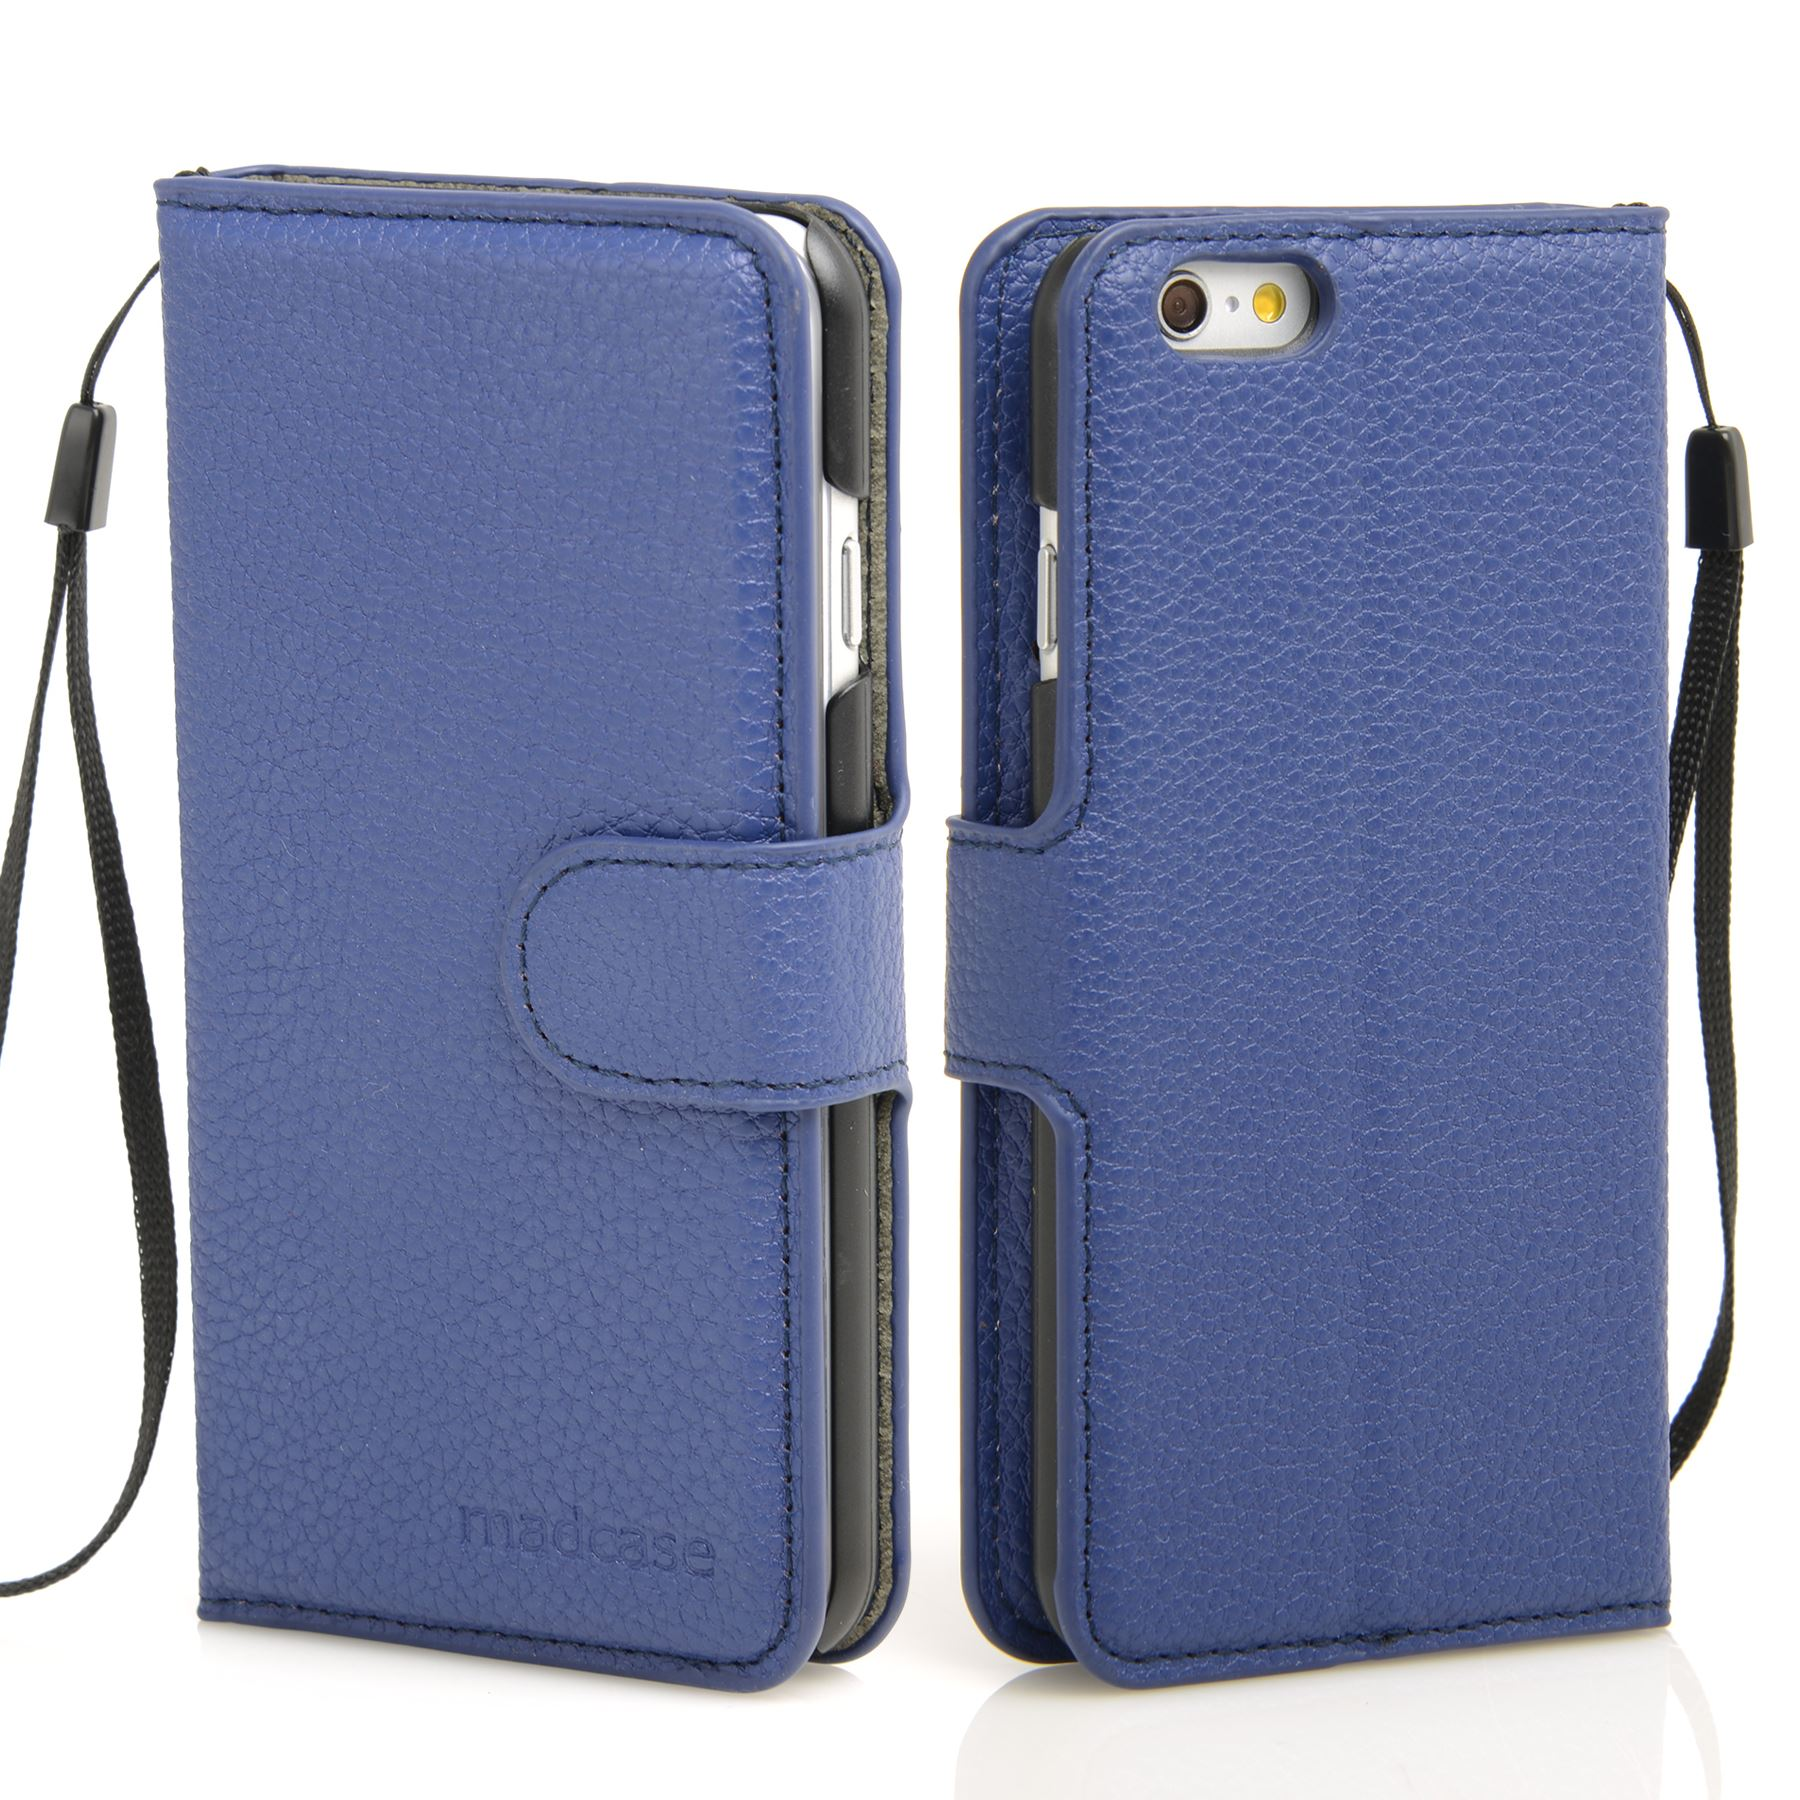 thumbnail 15 - For Apple iPhone 6s 6 Case Premium Textured Leather Wallet Madcase Cover